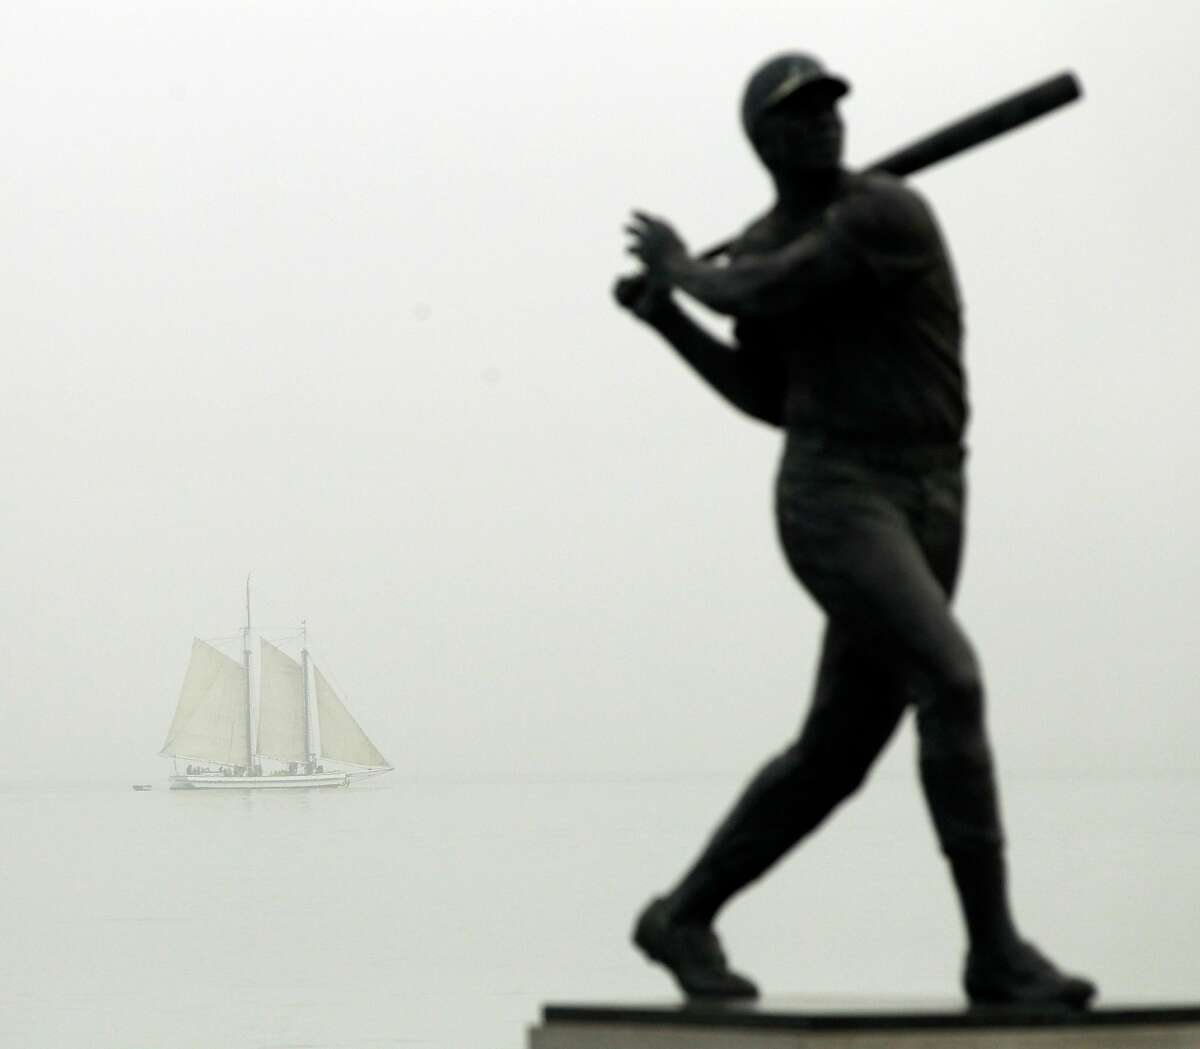 A boat passes behind the statue of Willie McCovey outside of the stadium before Game 3 of baseball's National League Championship Series between the Philadelphia Phillies and the San Francisco Giants, Tuesday, Oct. 19, 2010, in San Francisco. (AP Photo/Marcio Jose Sanchez)